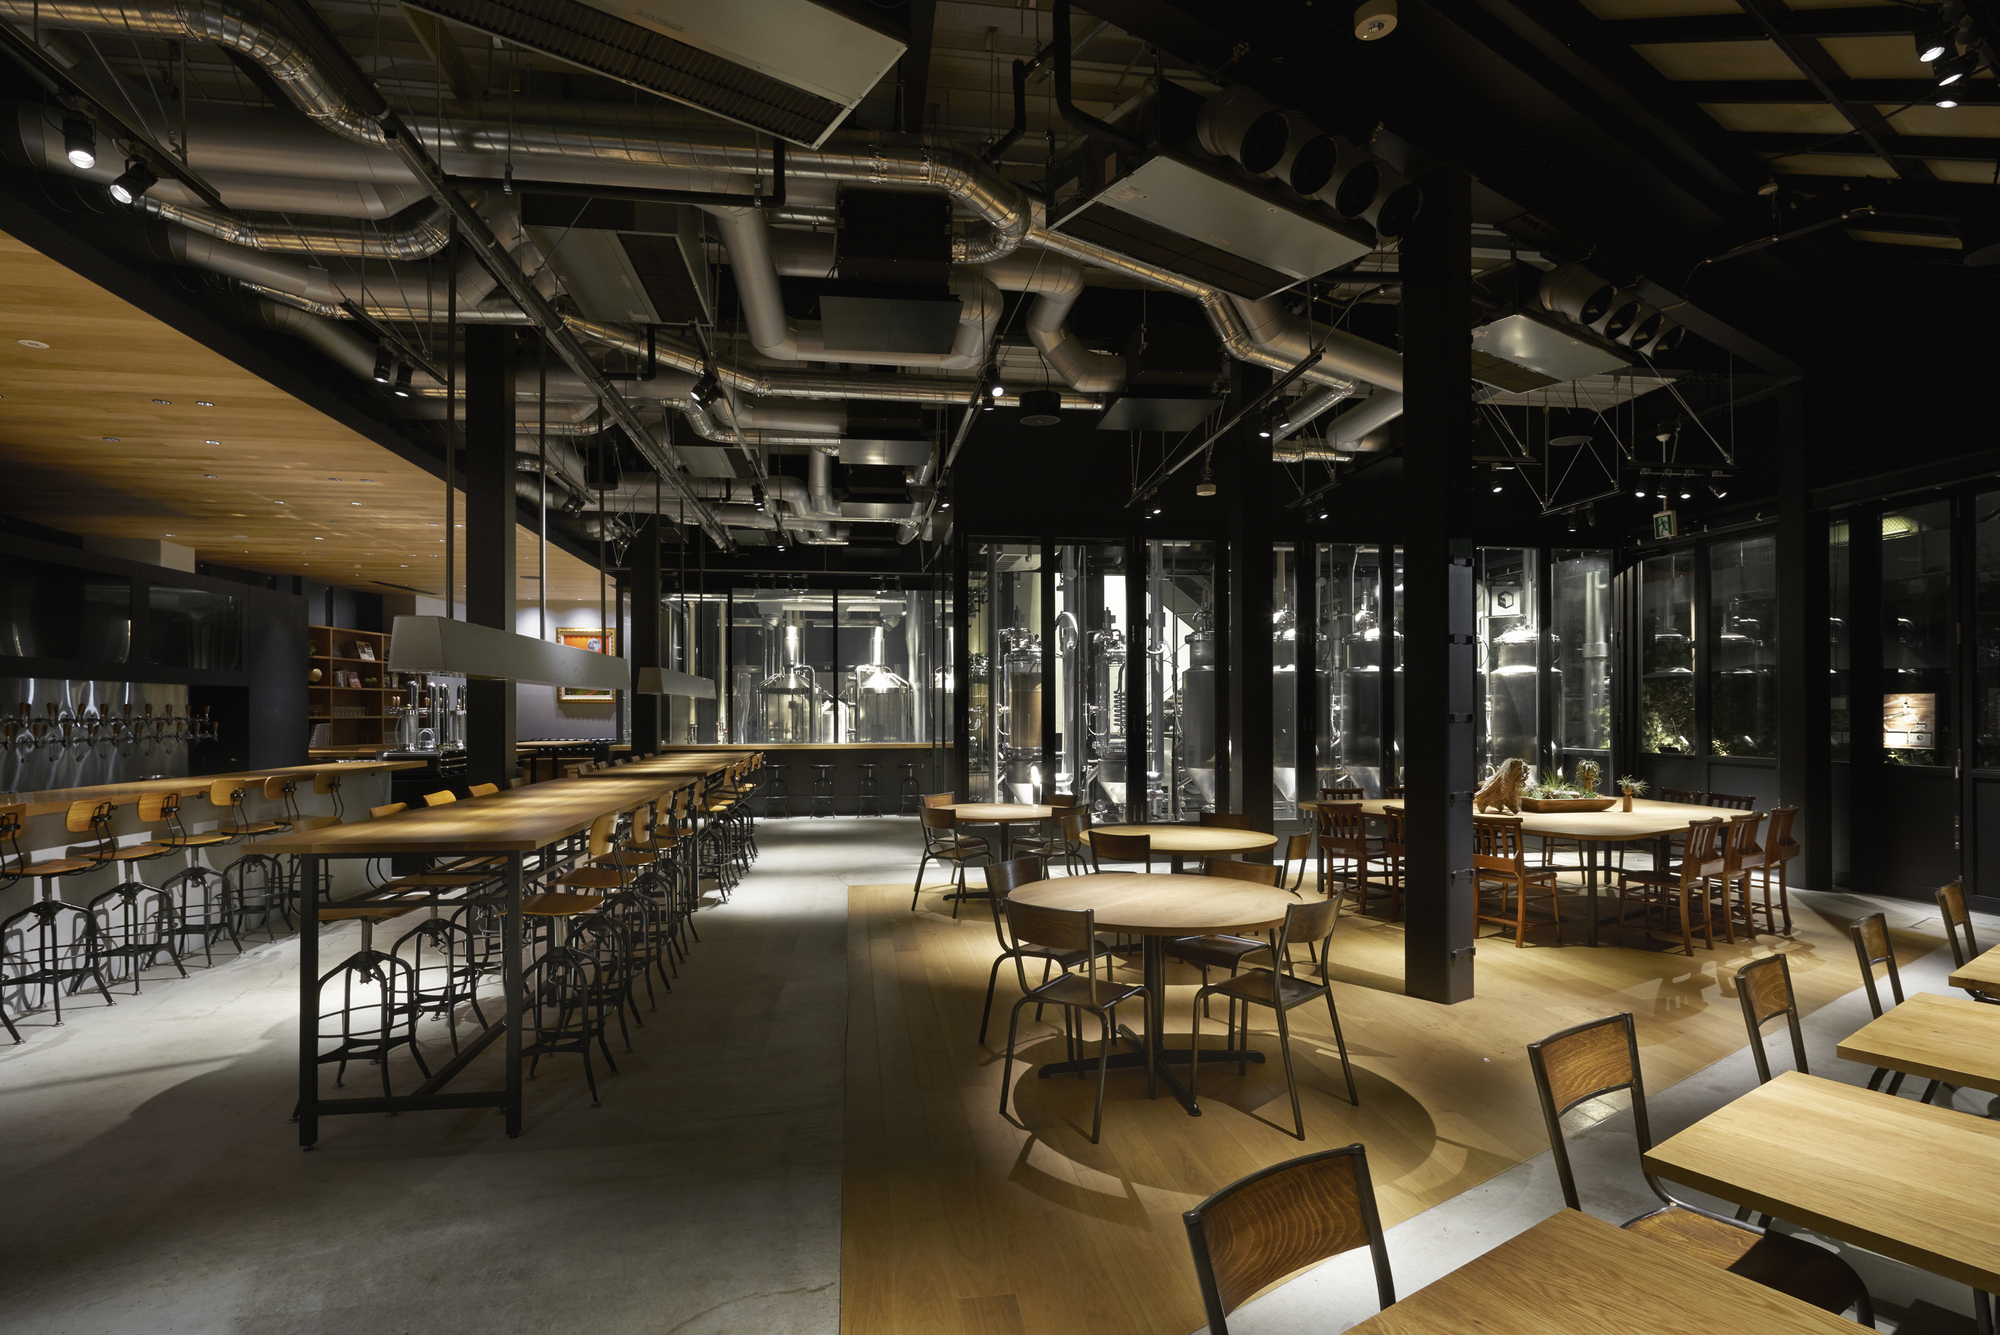 Spring valley brewery tokyo general design archdaily for Brewery design software